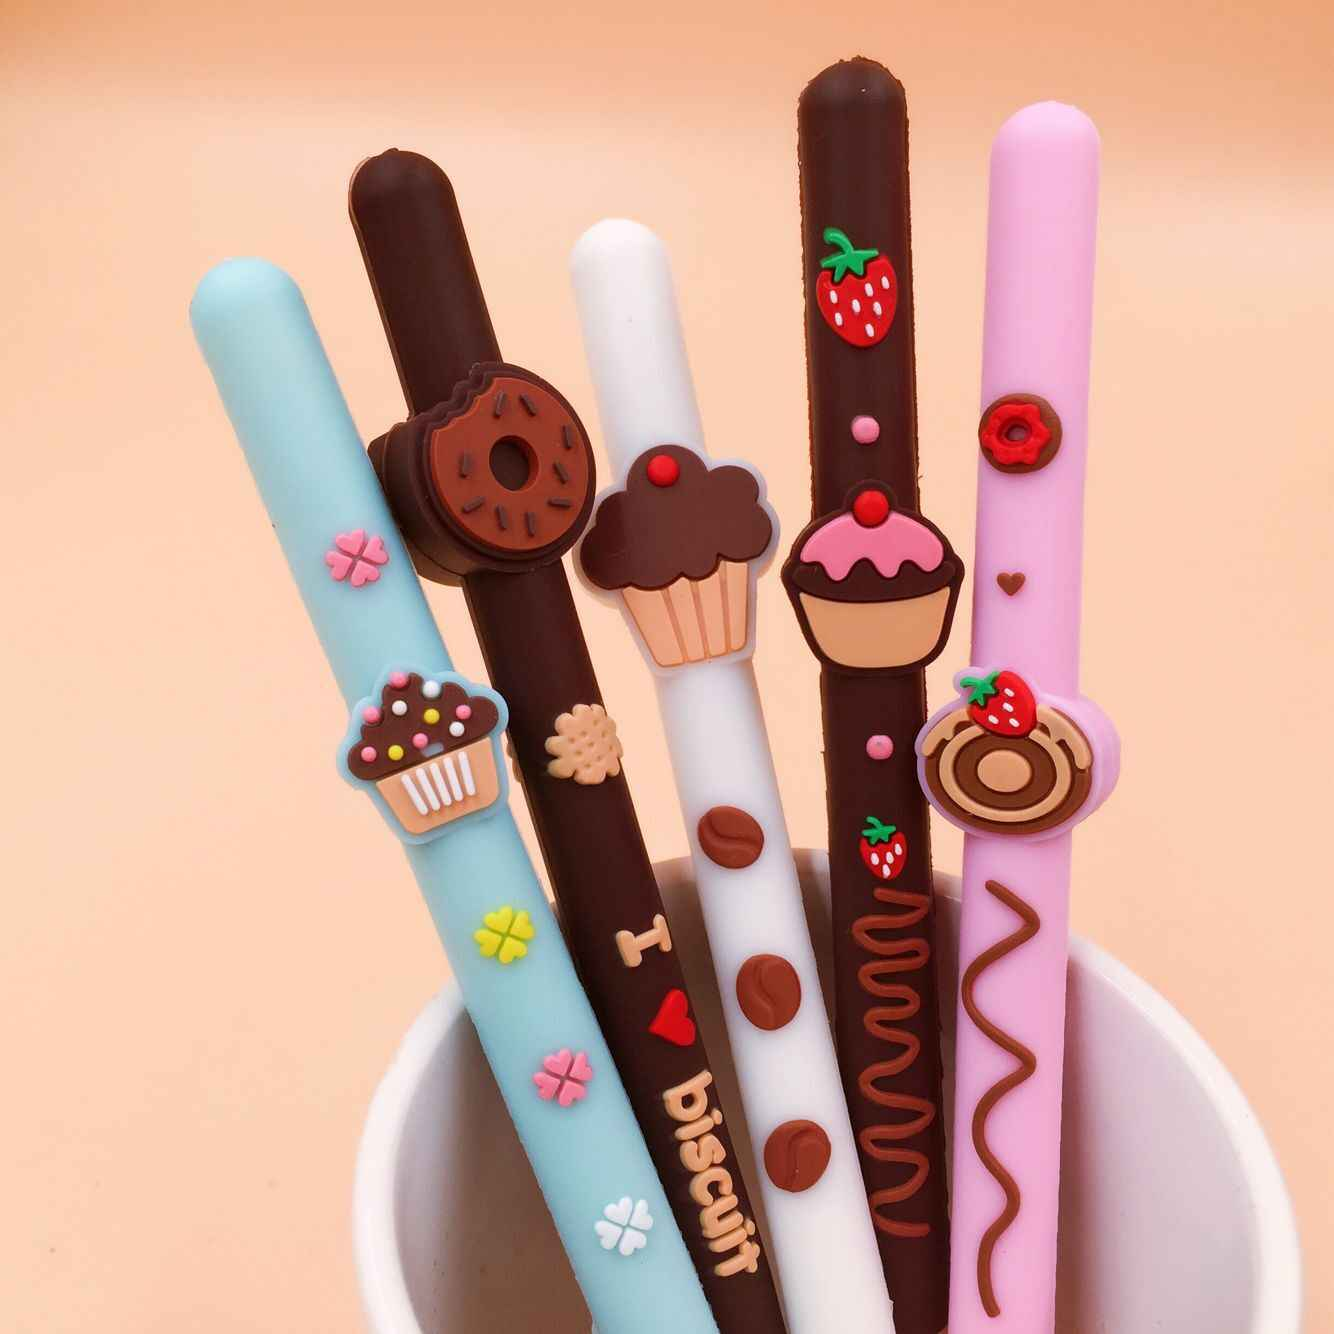 1 Piece Lytwtw's Korean Stationery Cute Biscuit Gel Pen School Office Kawaii Supply Handles Novelty  Gift Creative Choclate